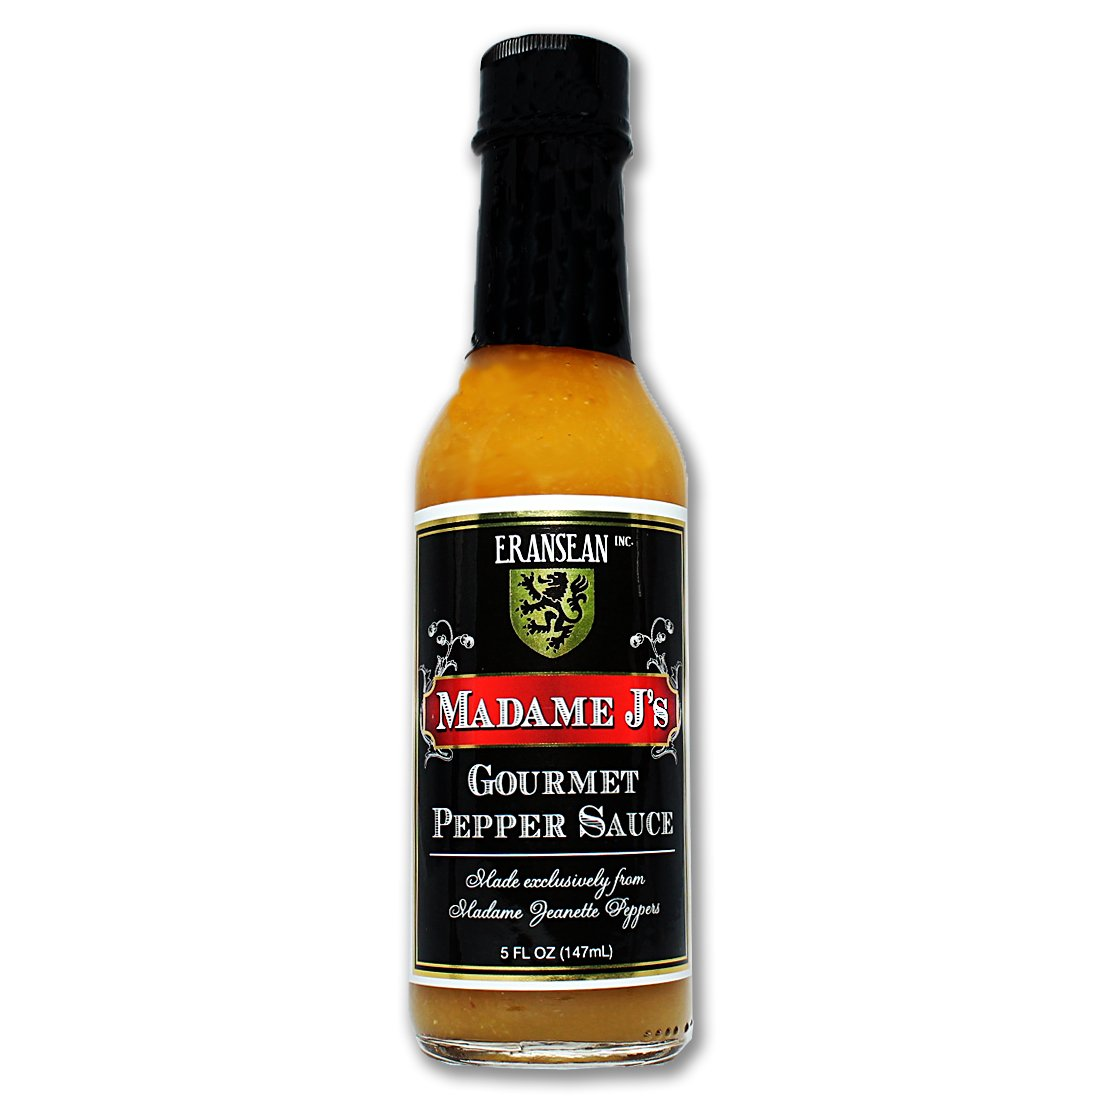 ERANSEAN Madame J's Gourmet Pepper Sauce/made from exclusively grown Madame Jeanette Peppers/natural unique flavor and heat/gluten free/shake bottle - 5 Fl. Oz.